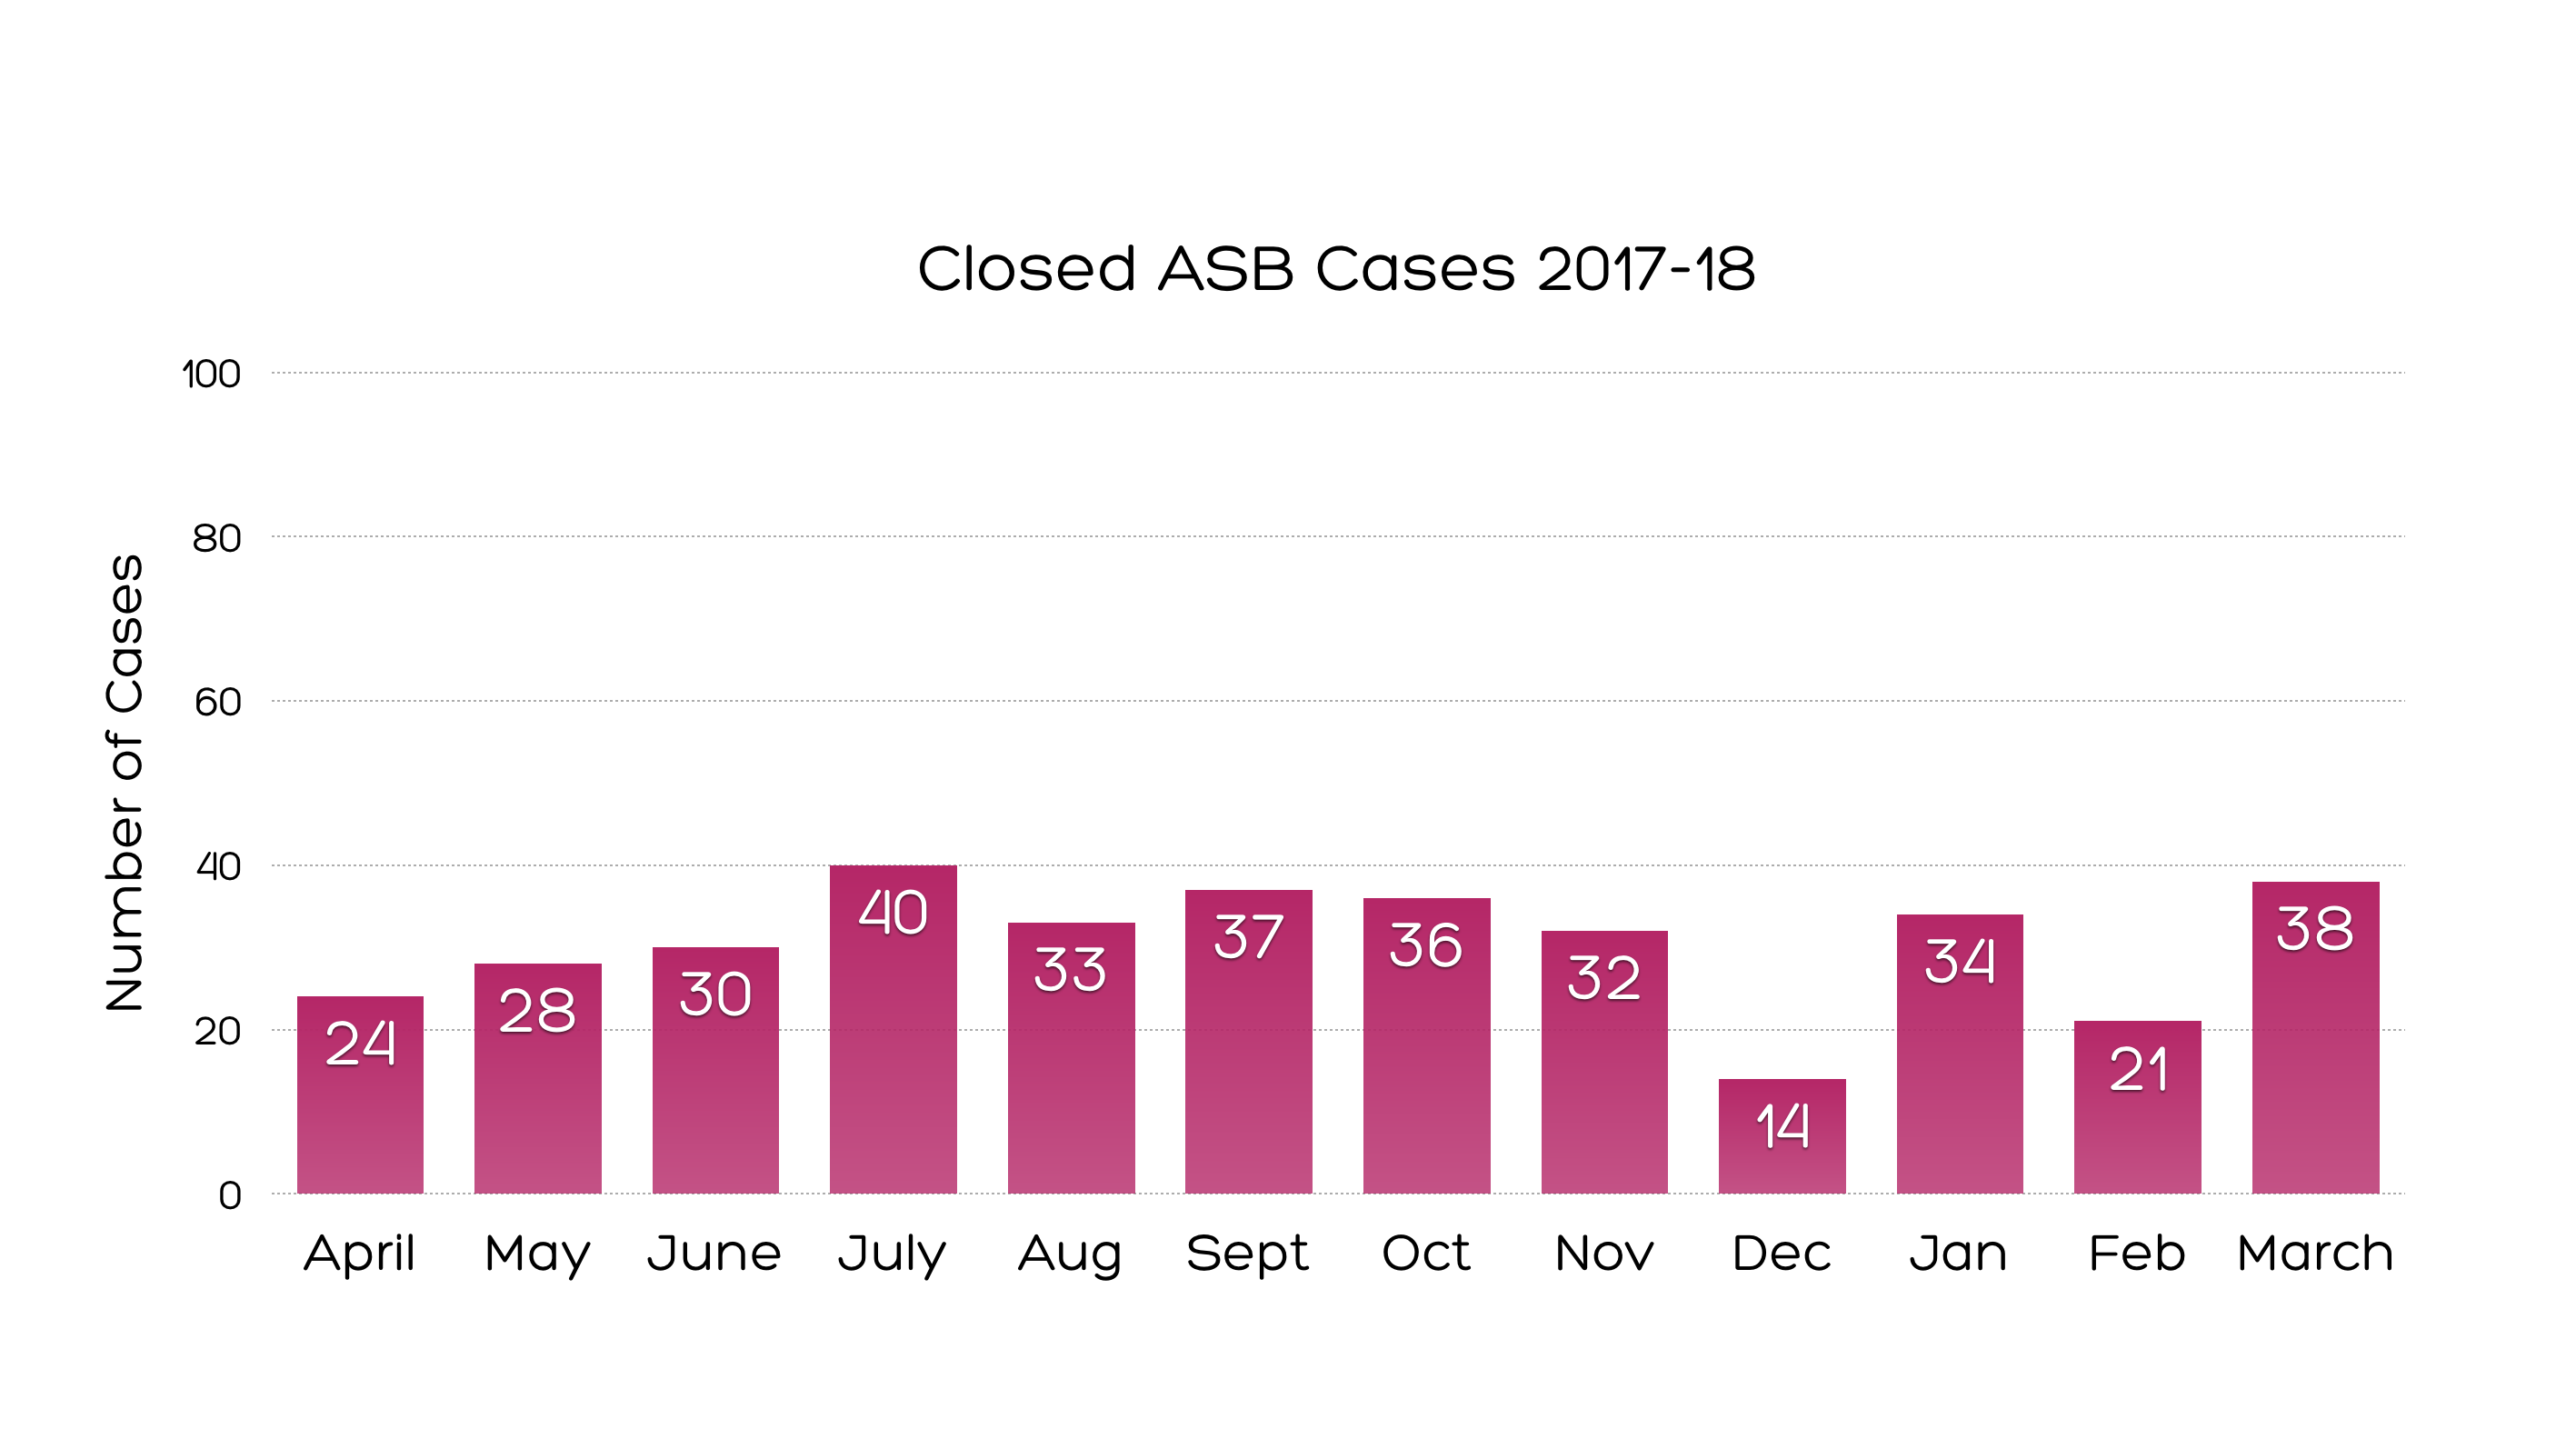 ASB Closed cases 2017-18